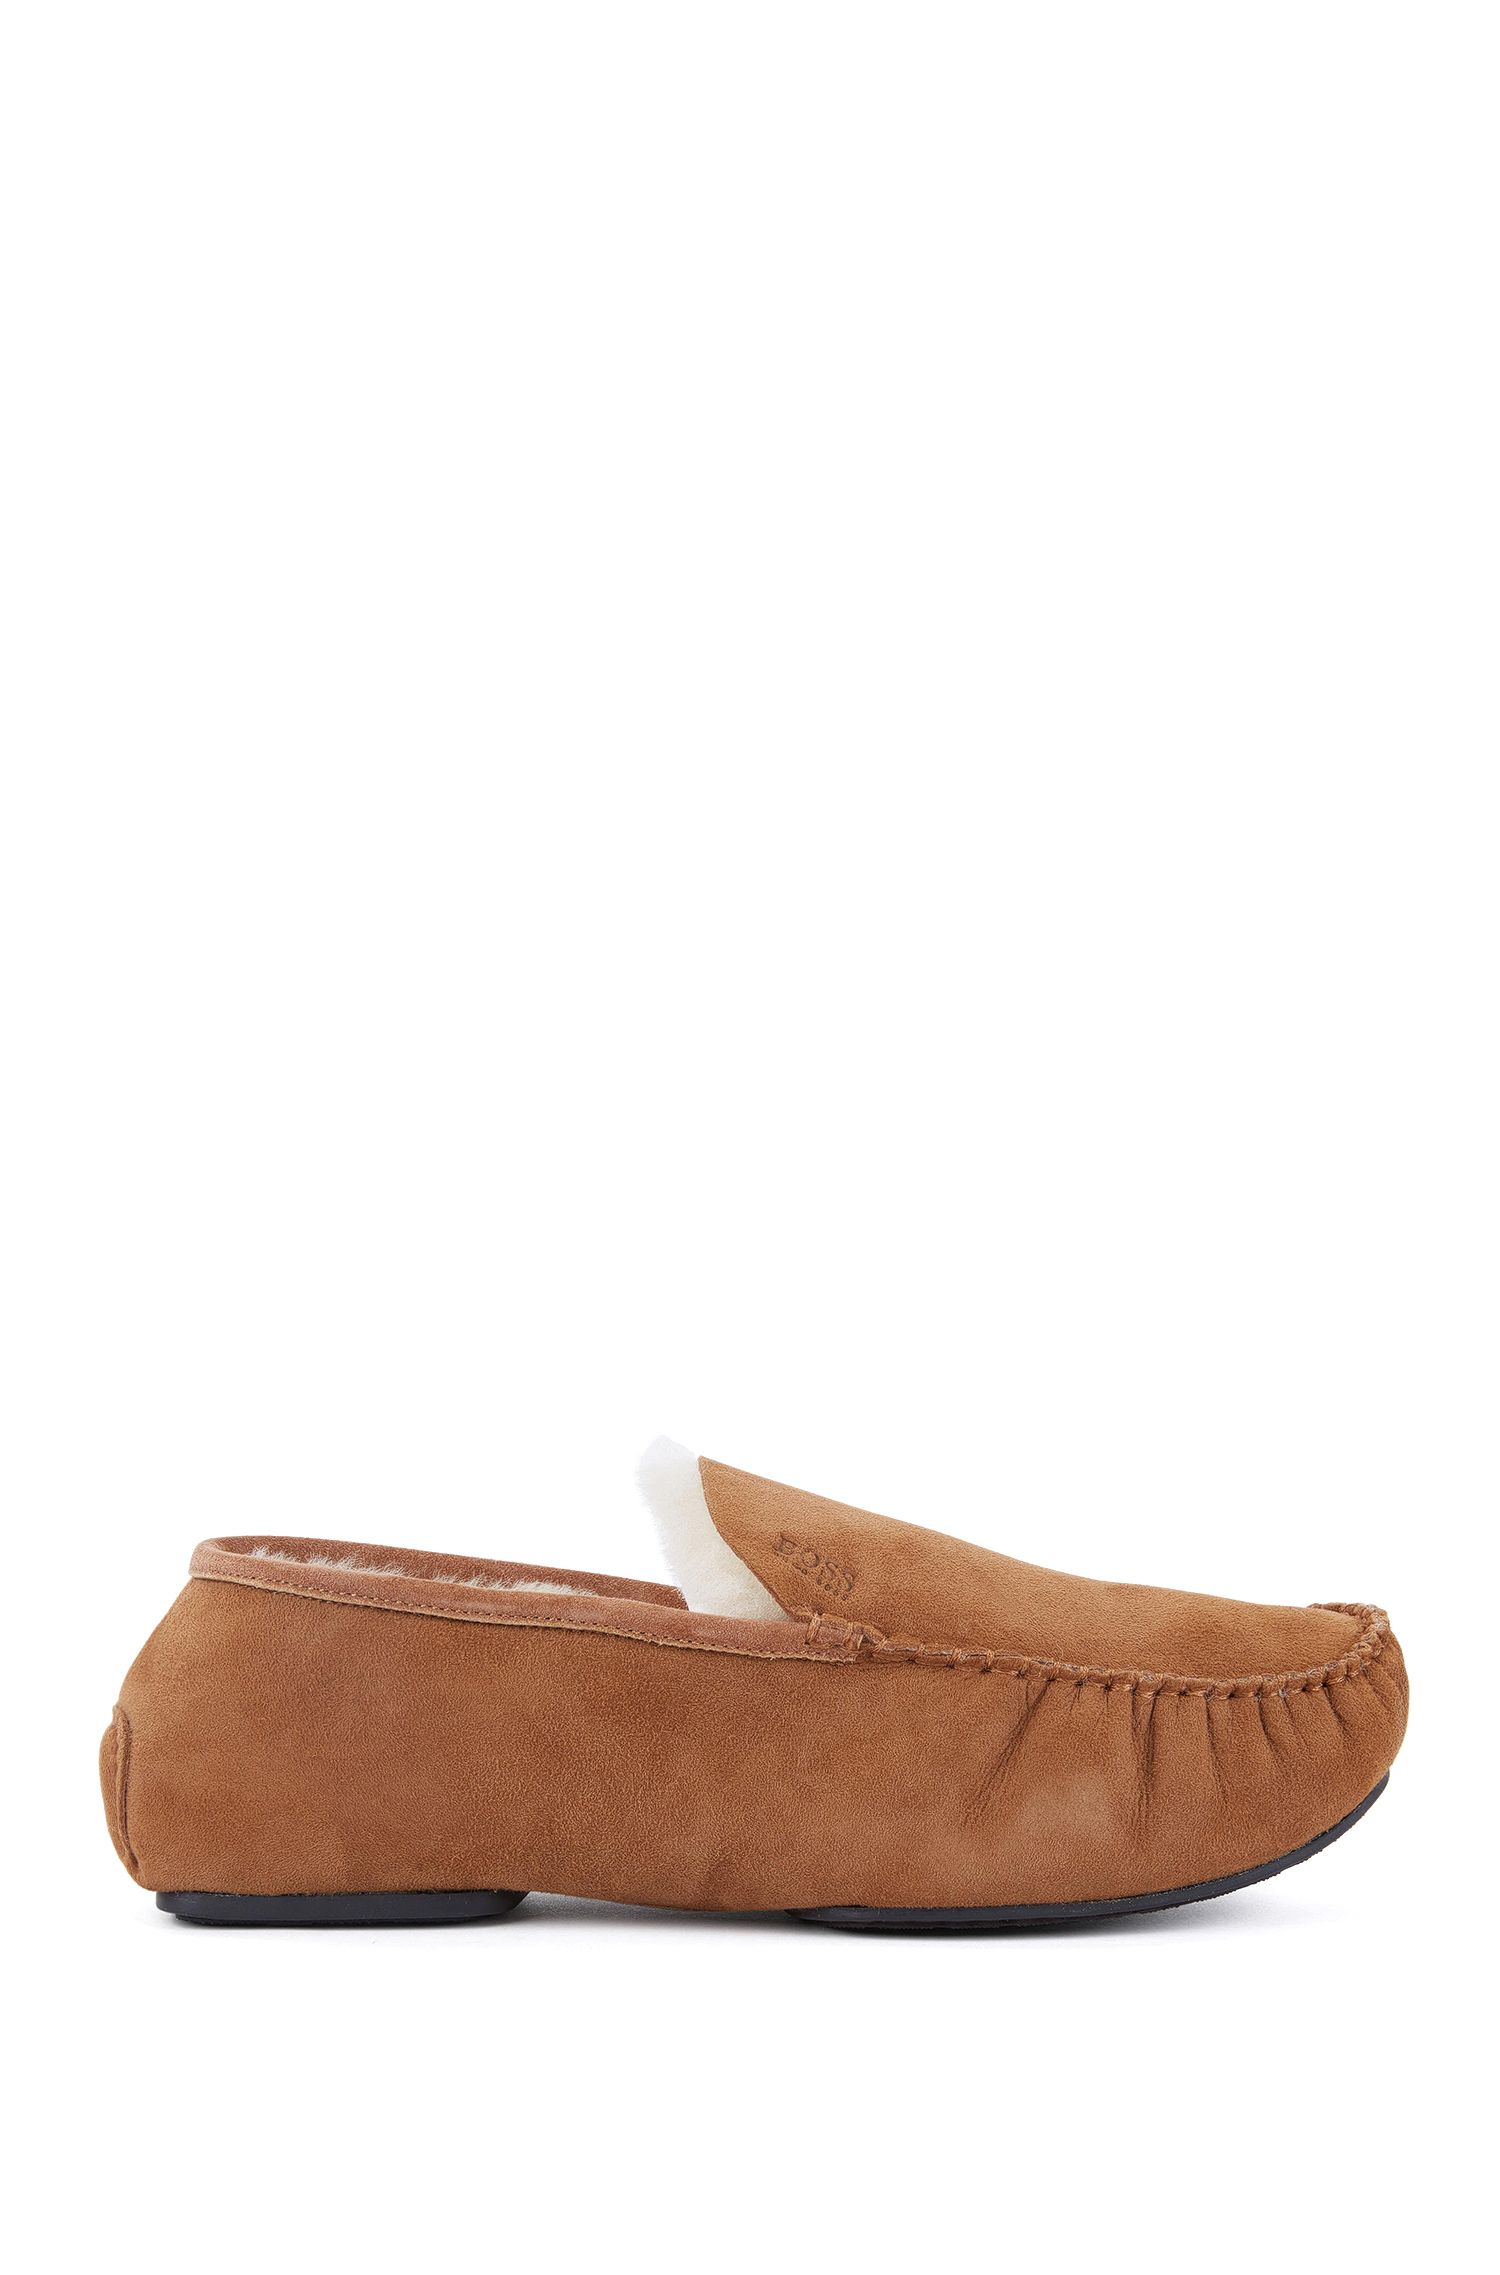 Shearling-Lined Suede Moccasins | Relax Mocc